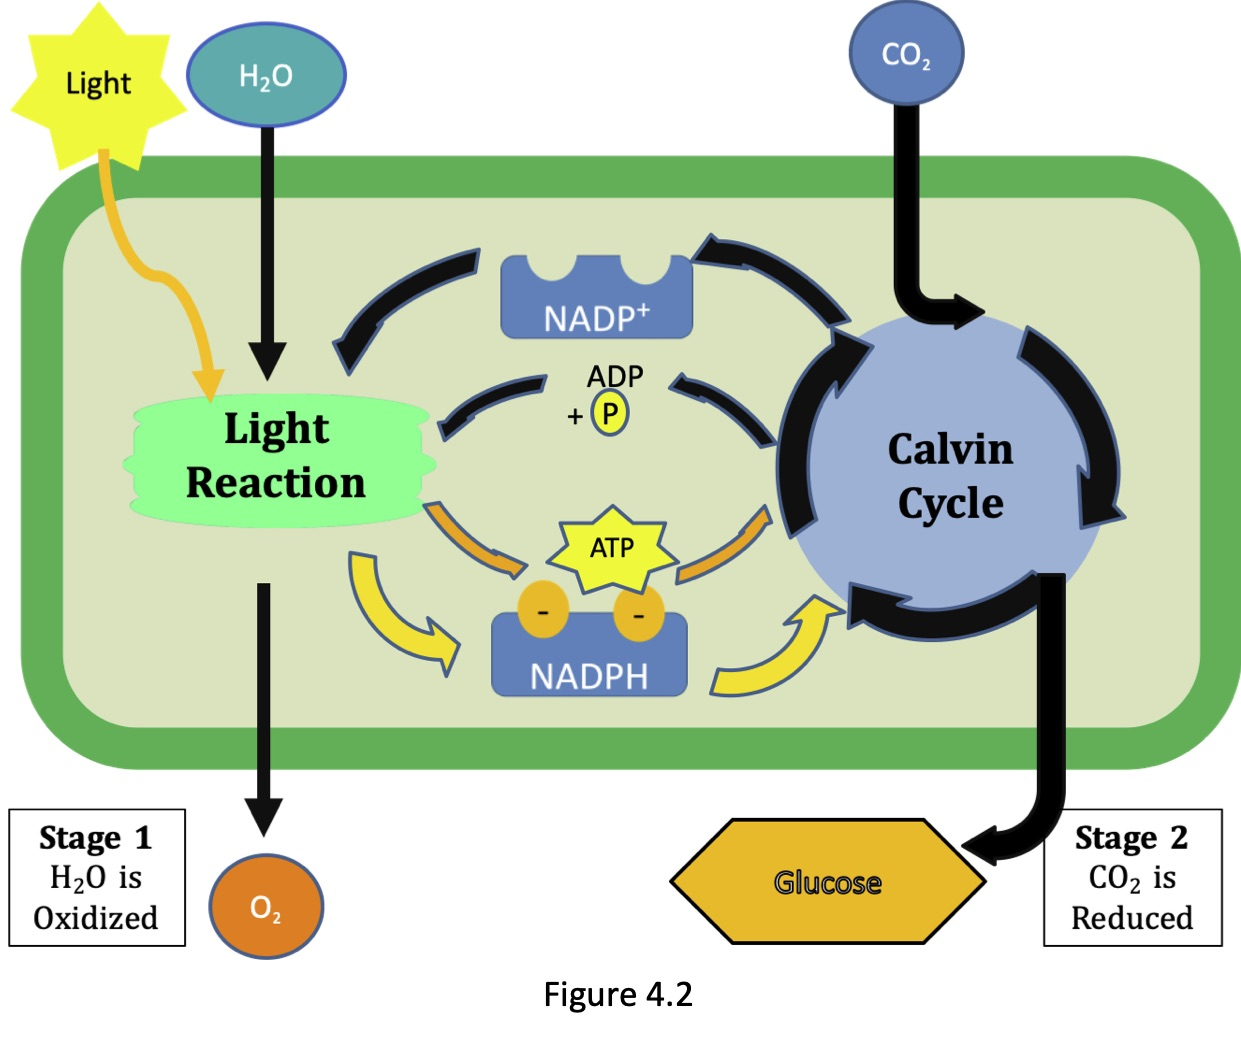 Figure 4.2 illustrates the two stages of photosynthesis in plants to manufacture a molecule of glucose. Stage 1 is the light reaction where the energy from the sun is used to oxidized water molecules thus splitting the water into molecules of oxygen, which is released into the air, and hydrogen molecules which are used to reduce NADP+ to NADPH. This stage also produces ATP. Stage 2 is the Calvin or the dark reaction, takes place in the absence of light, where carbon dioxide molecules are absorbed from air and combined with the hydrogen ions extracted from the water. The carbon dioxide is reduced to in the process producing glucose by using ATP and NADPH produced in the light reaction. The oxidized ADP and the NADP+ returns back to participate in the light reaction.